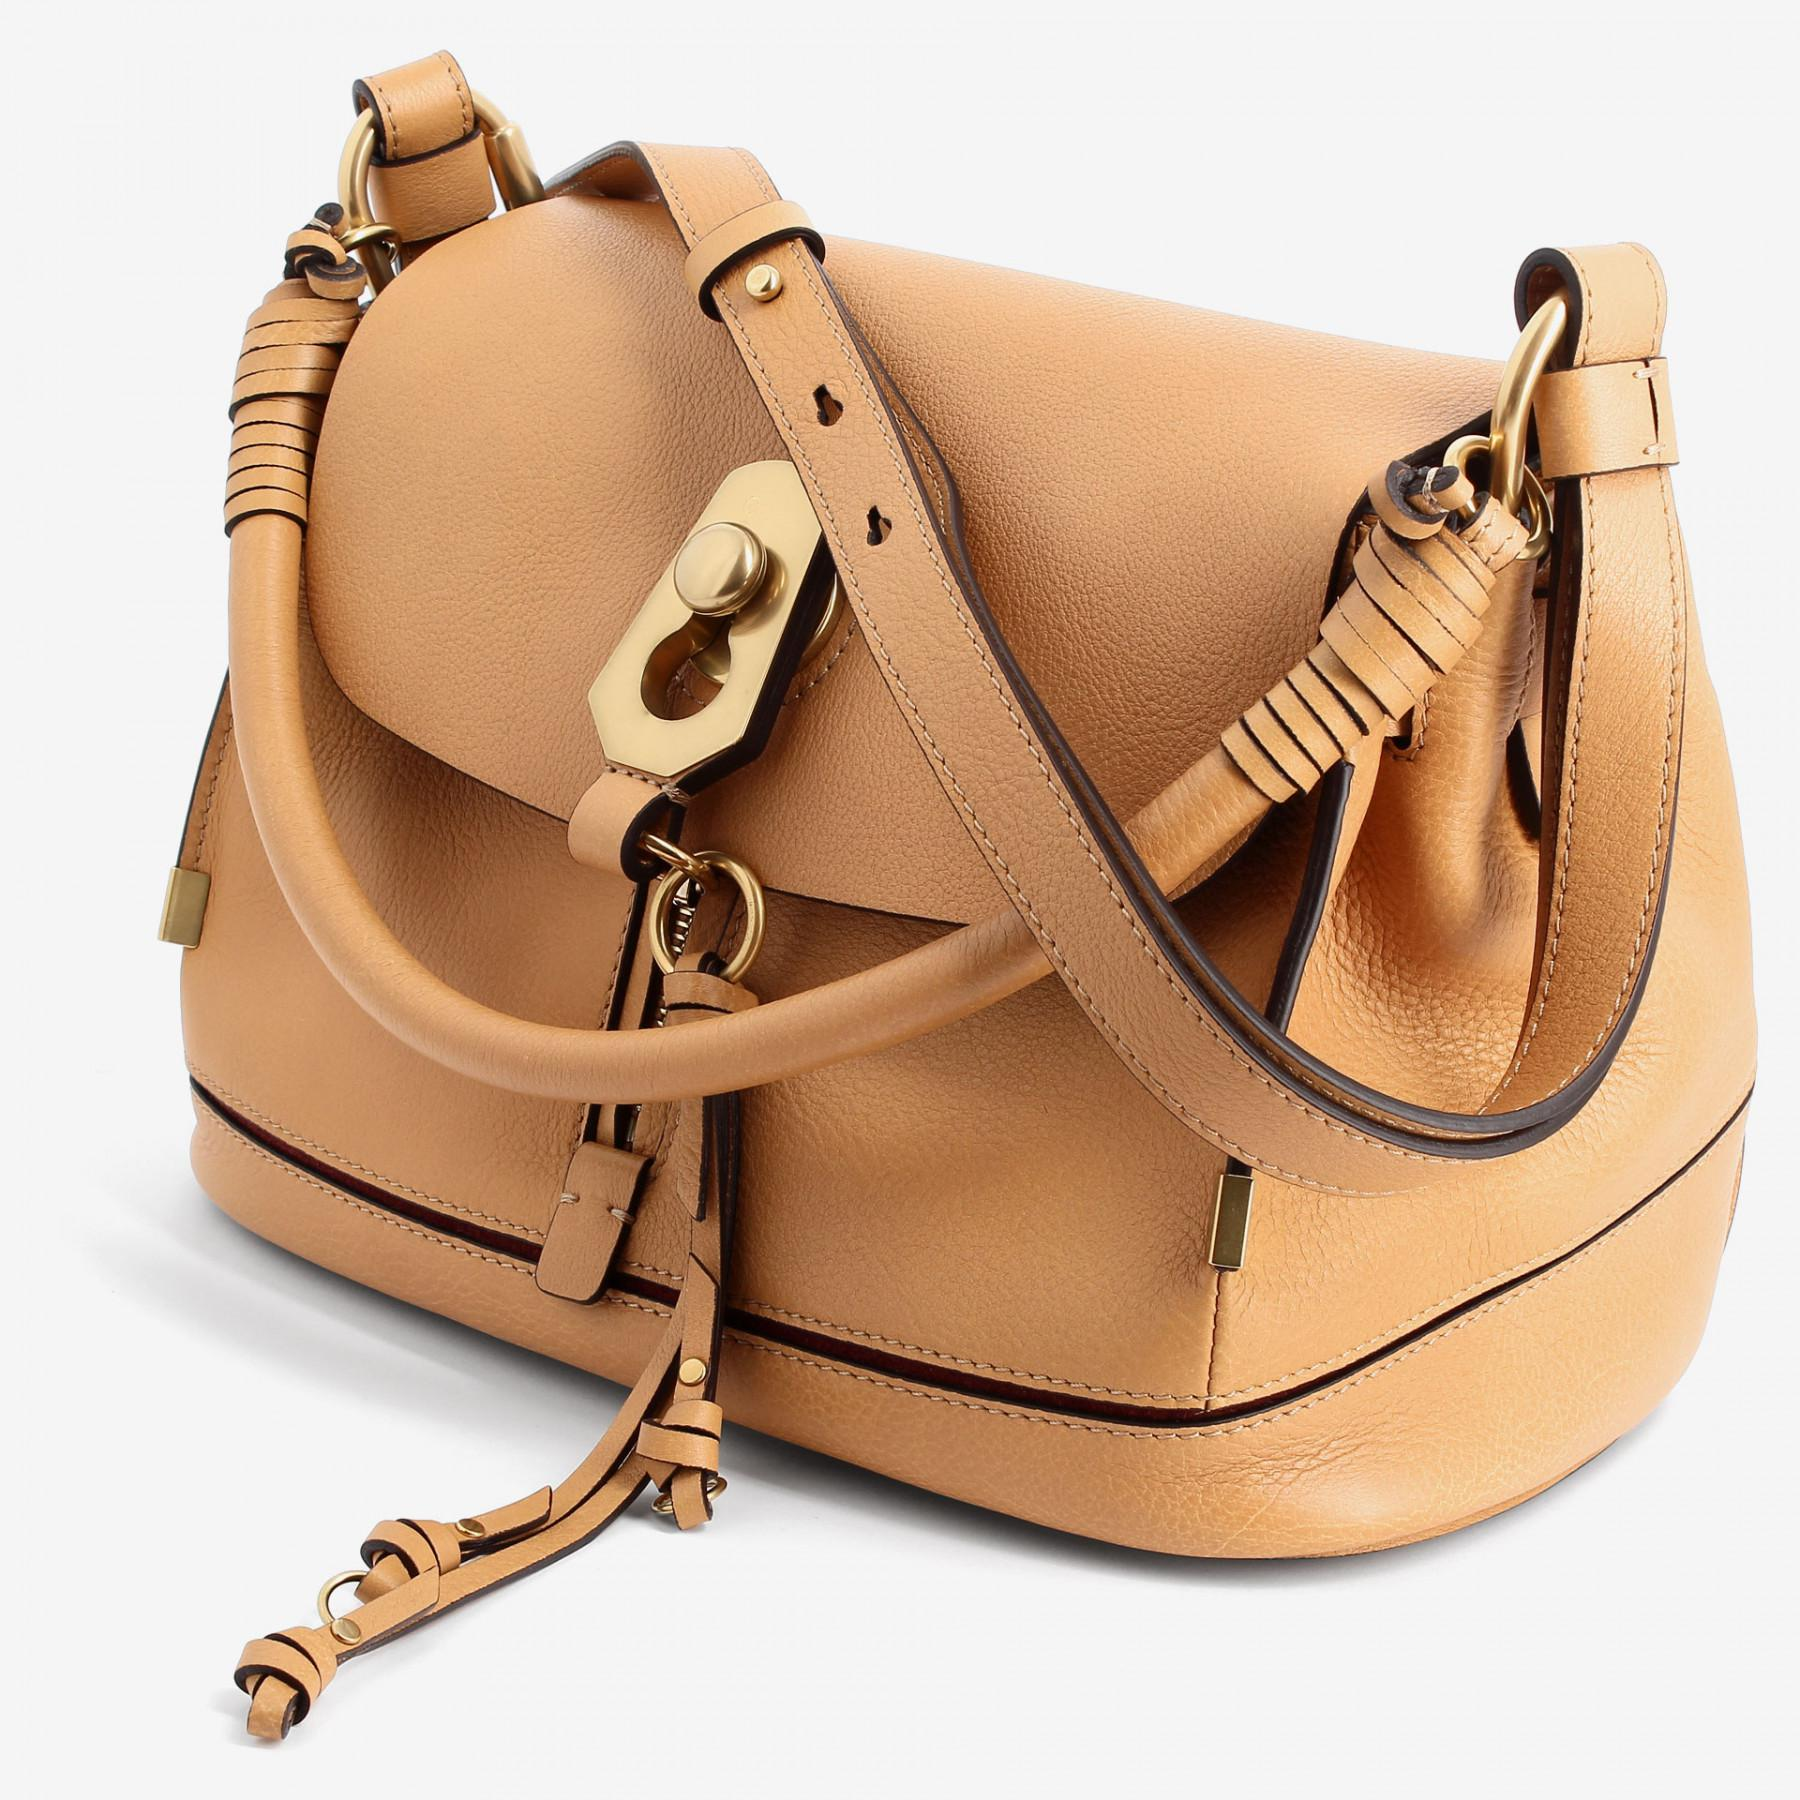 31fa2e666953 Chloé Owen Bag With Flap in Brown - Lyst